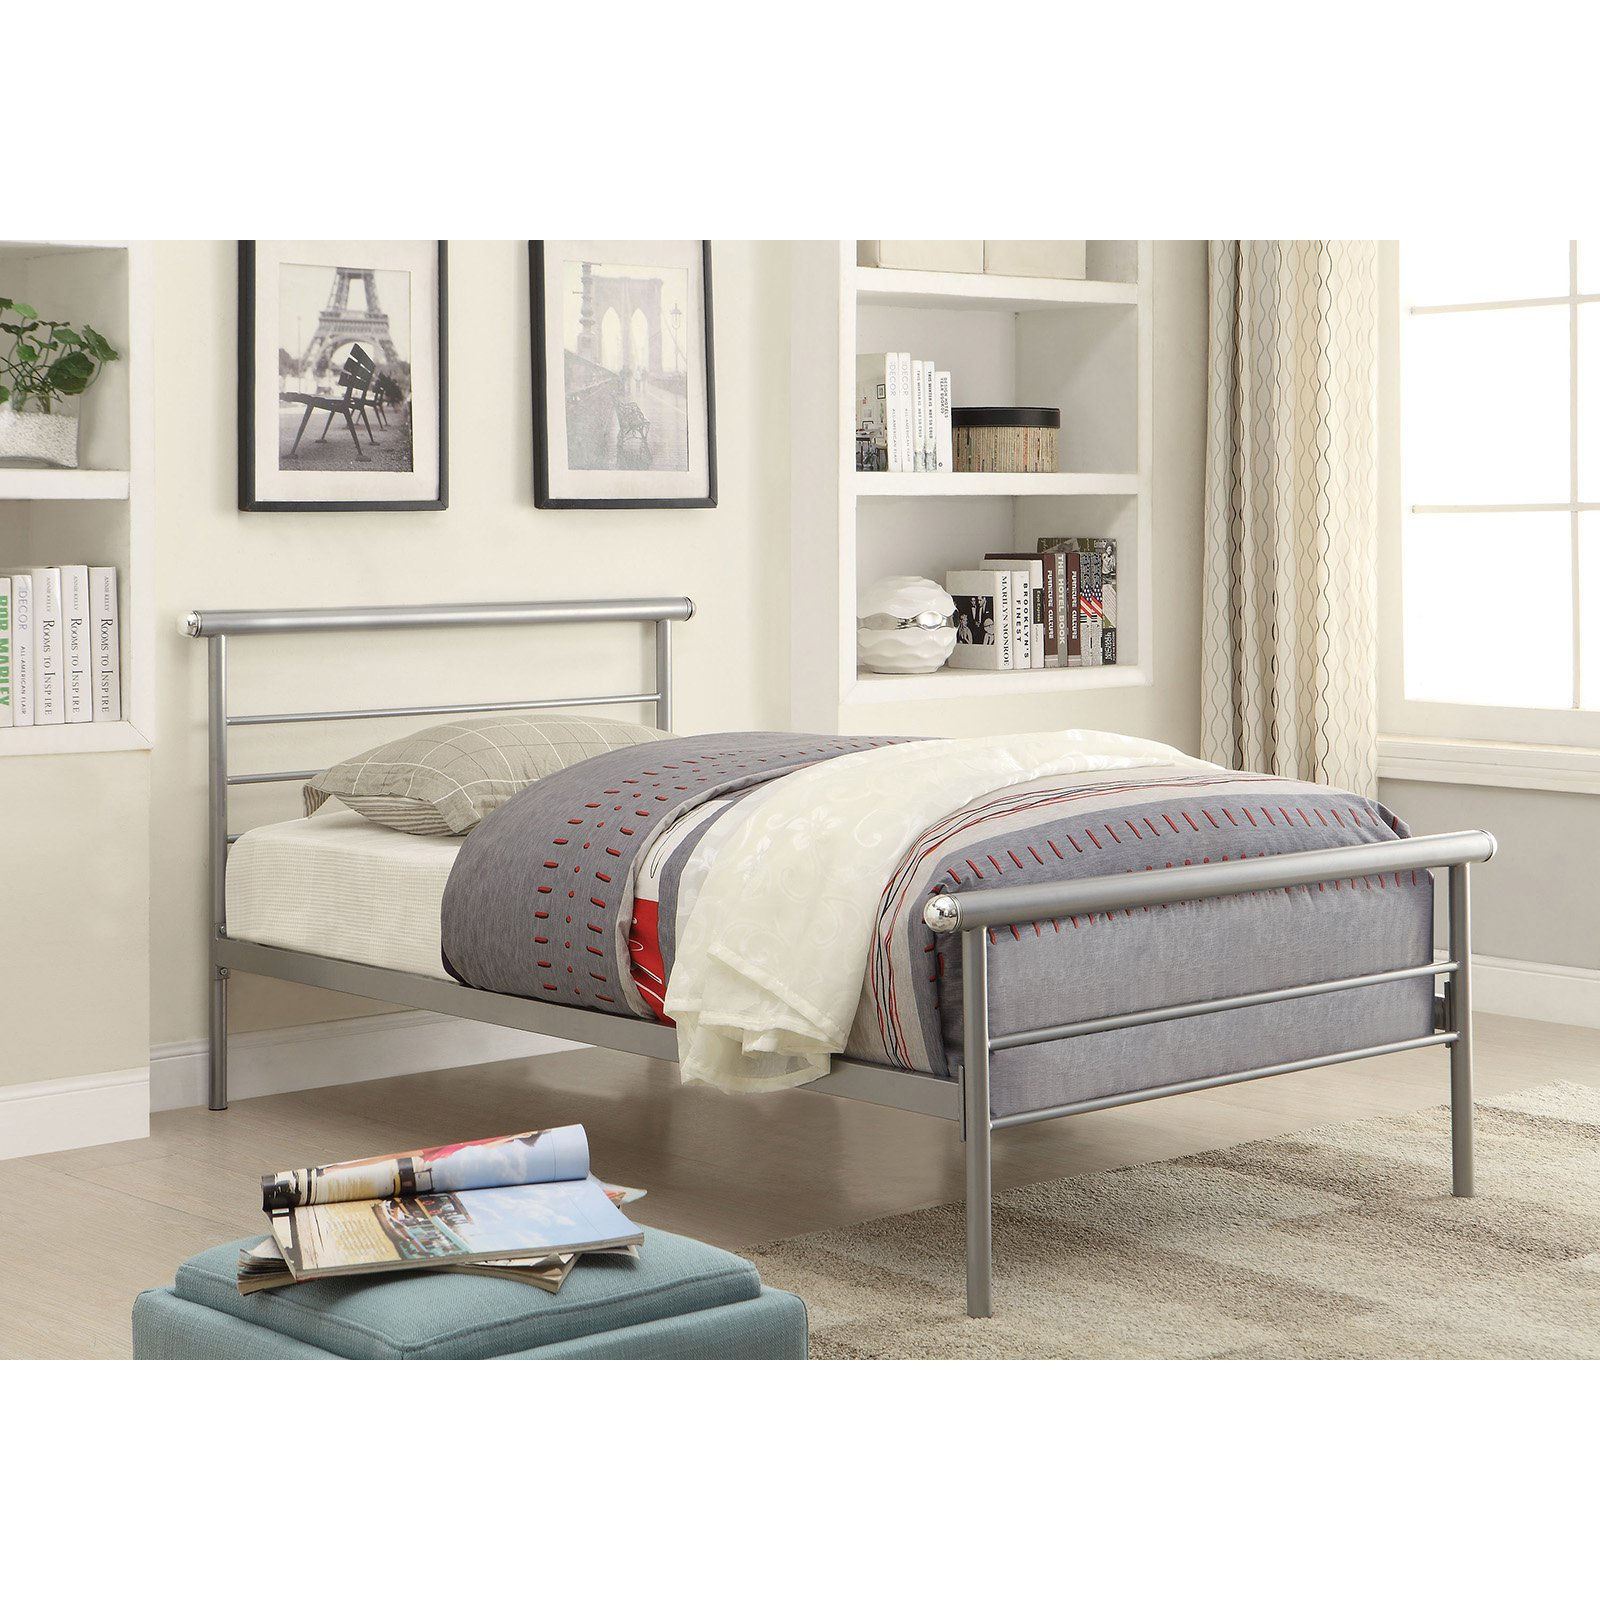 Coaster Furniture Shelton Platform Bed